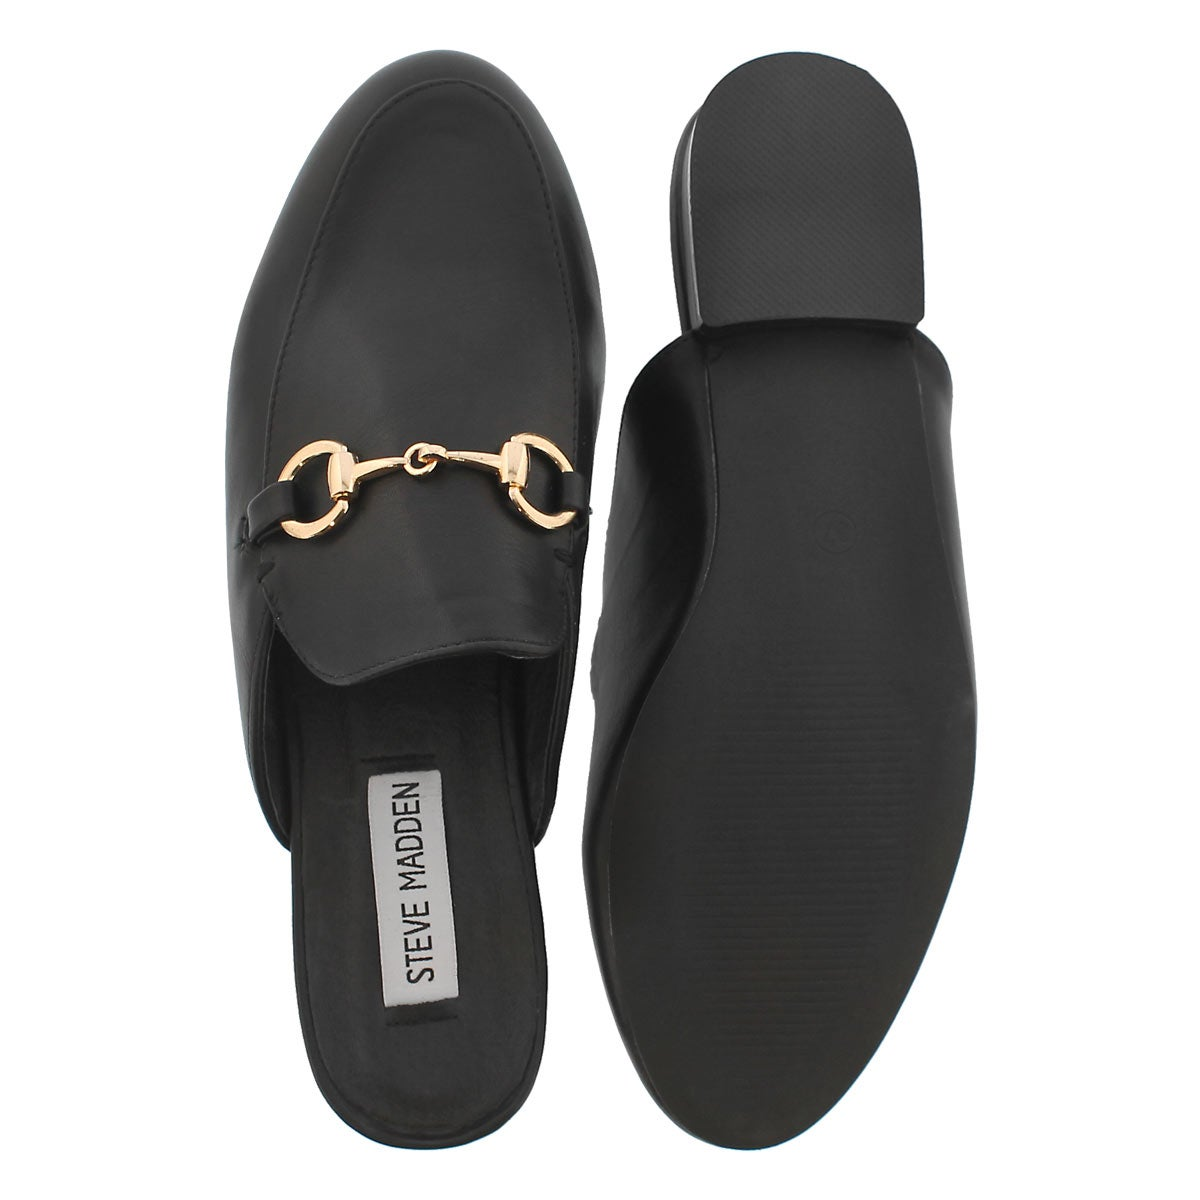 Lds Doriana black slip on dress loafer